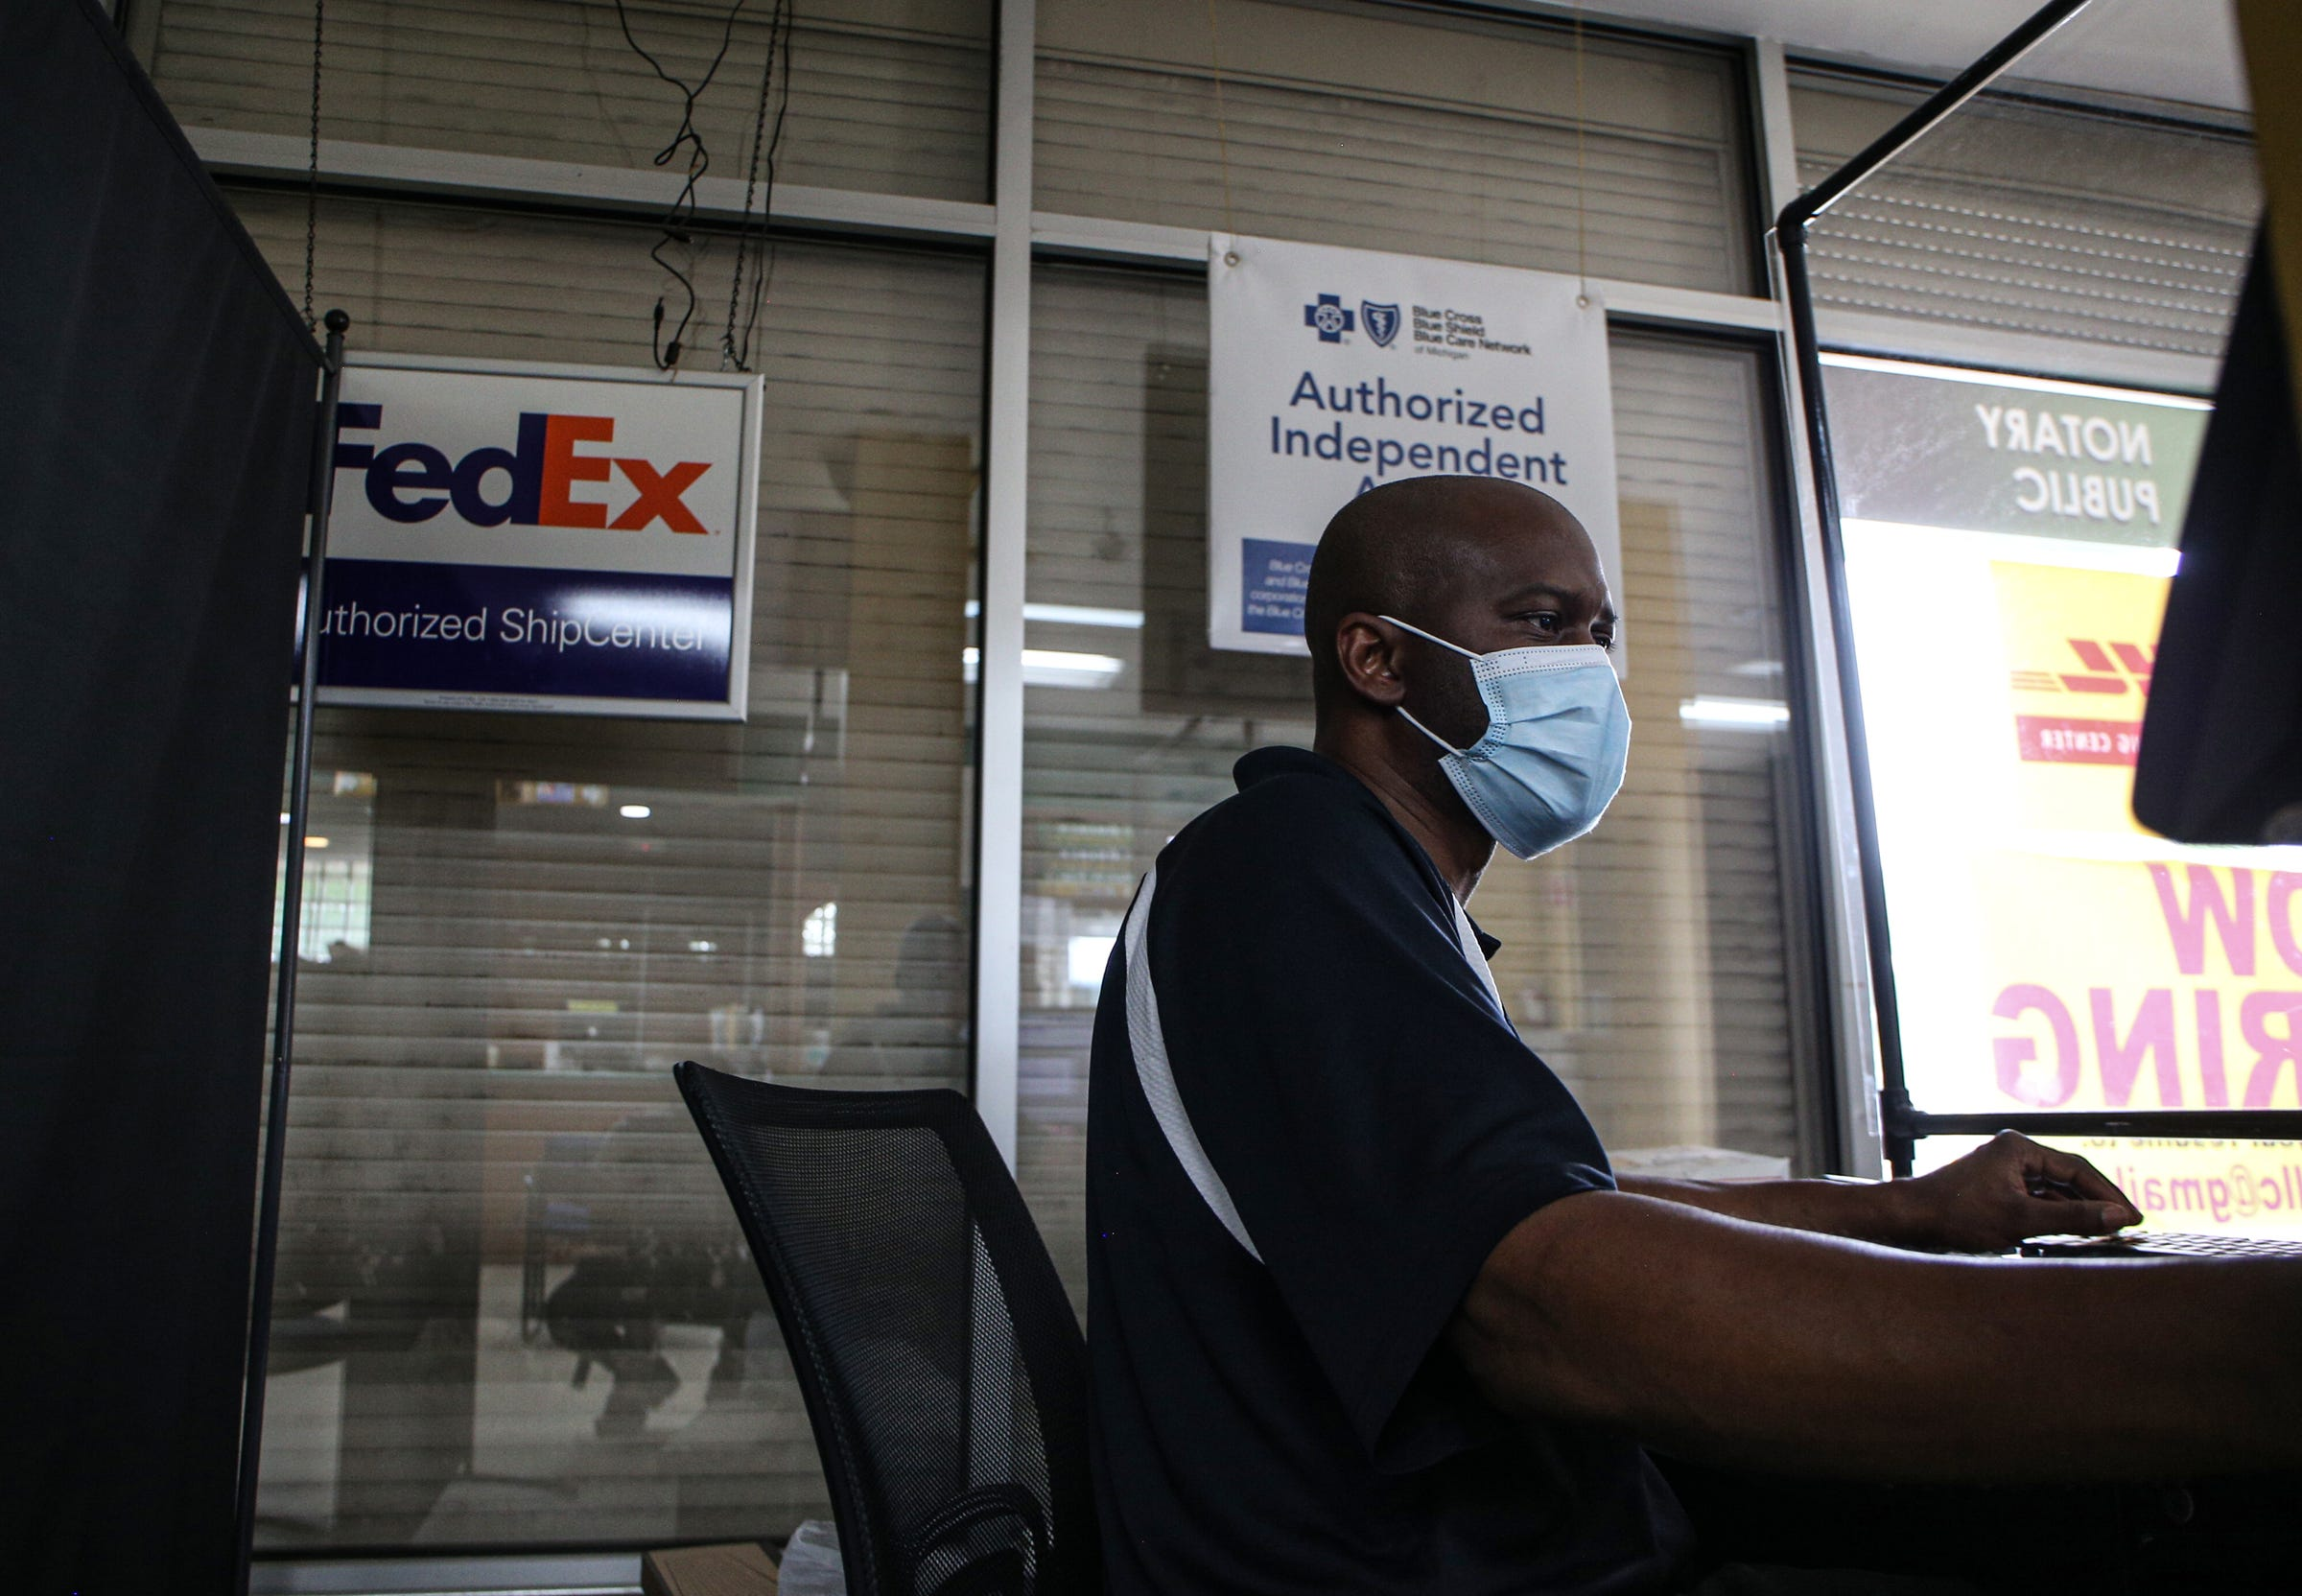 Mario Hall helps a customer at Hallstarz Business Center in Detroit on July 15, 2021. The business center is a one-stop-shop in the Bagley neighborhood. A neighborhood source for packing, shipping, printing and other business services. Created 36 years ago by a Detroit couple, Milton Hall Jr. and Vanessa Hall. The business is now run by their oldest son, Mario Hall with help from his five brothers.